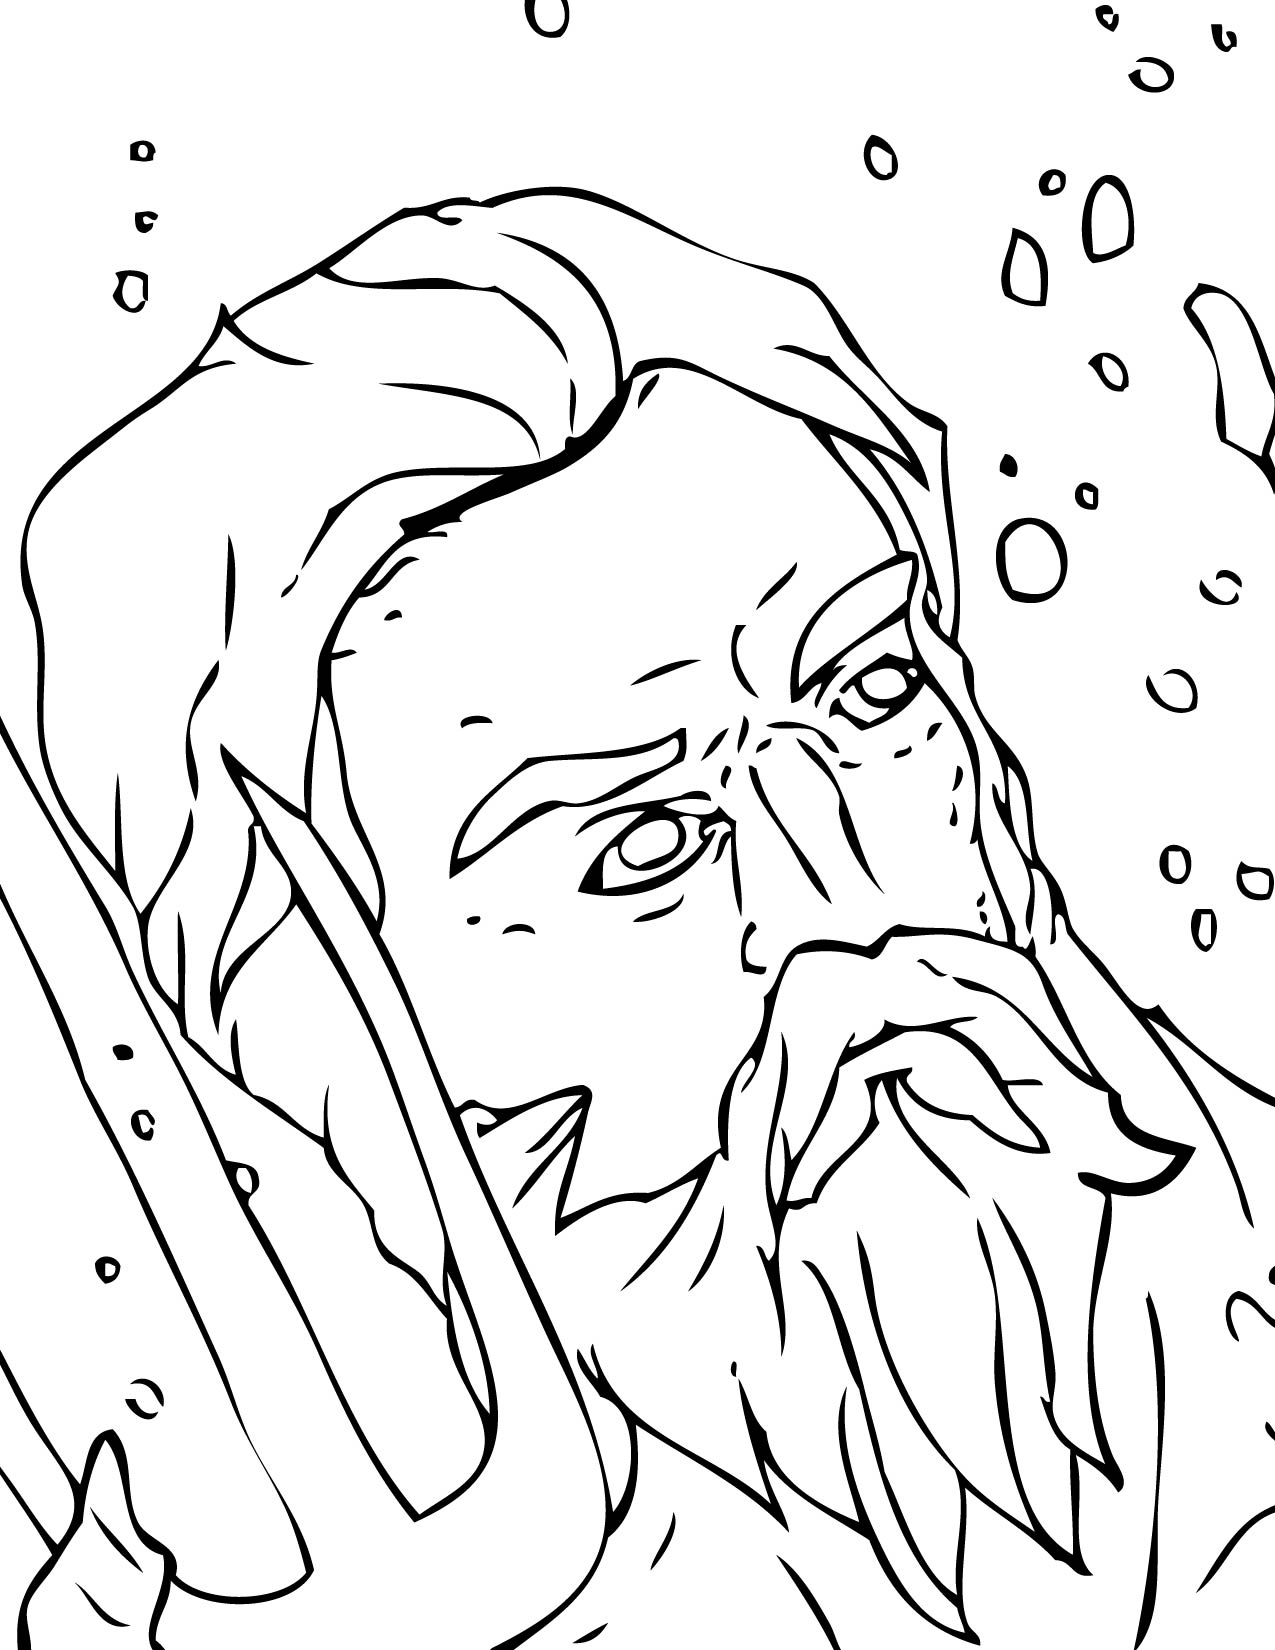 worksheet Greek Gods Worksheet greek gods coloring pages zeus god of war ancient handipoints